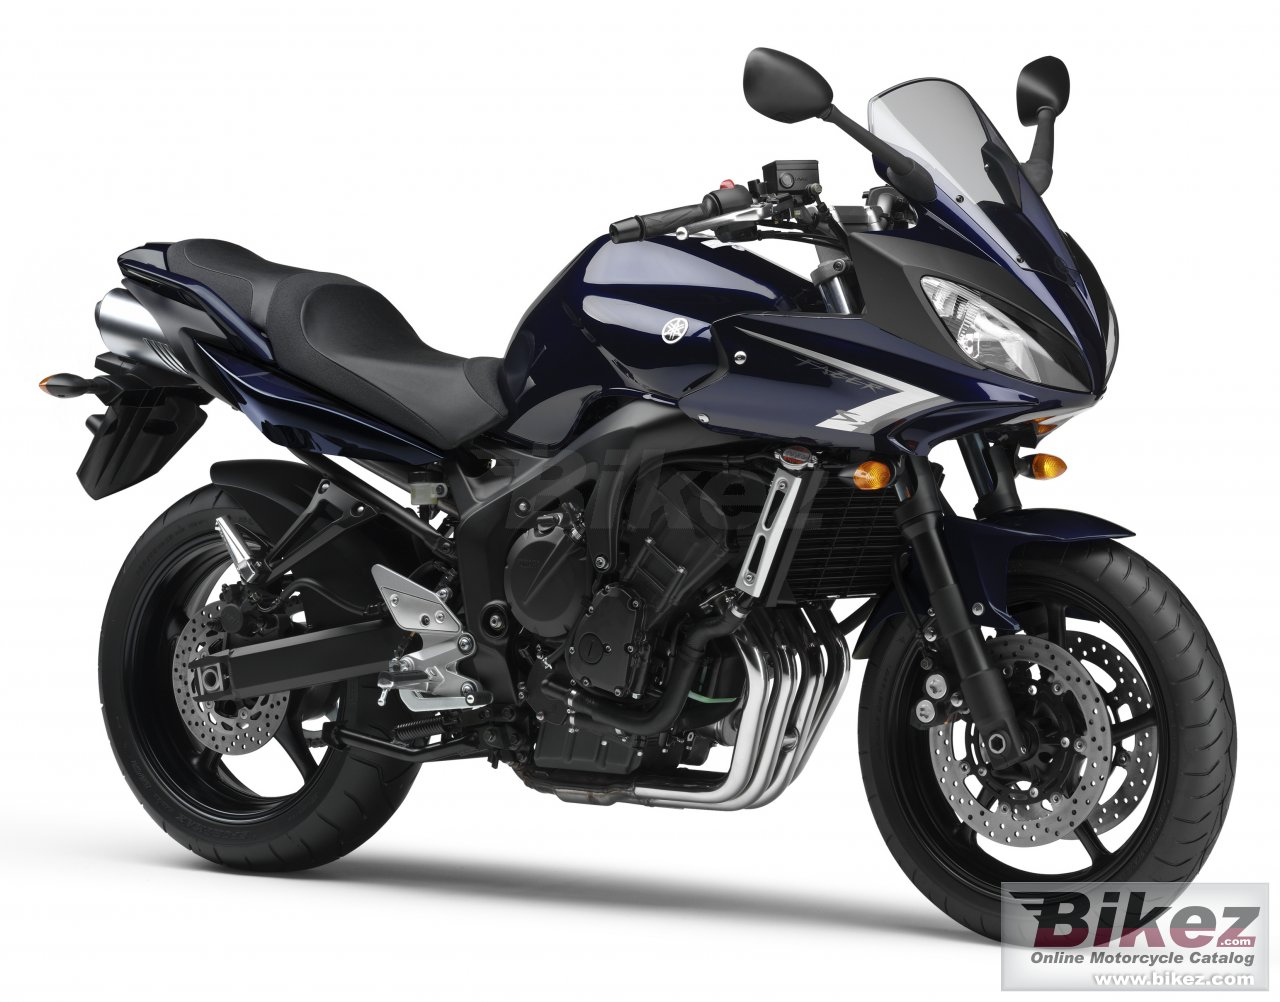 Big Yamaha fz6 fazer s2 picture and wallpaper from Bikez.com